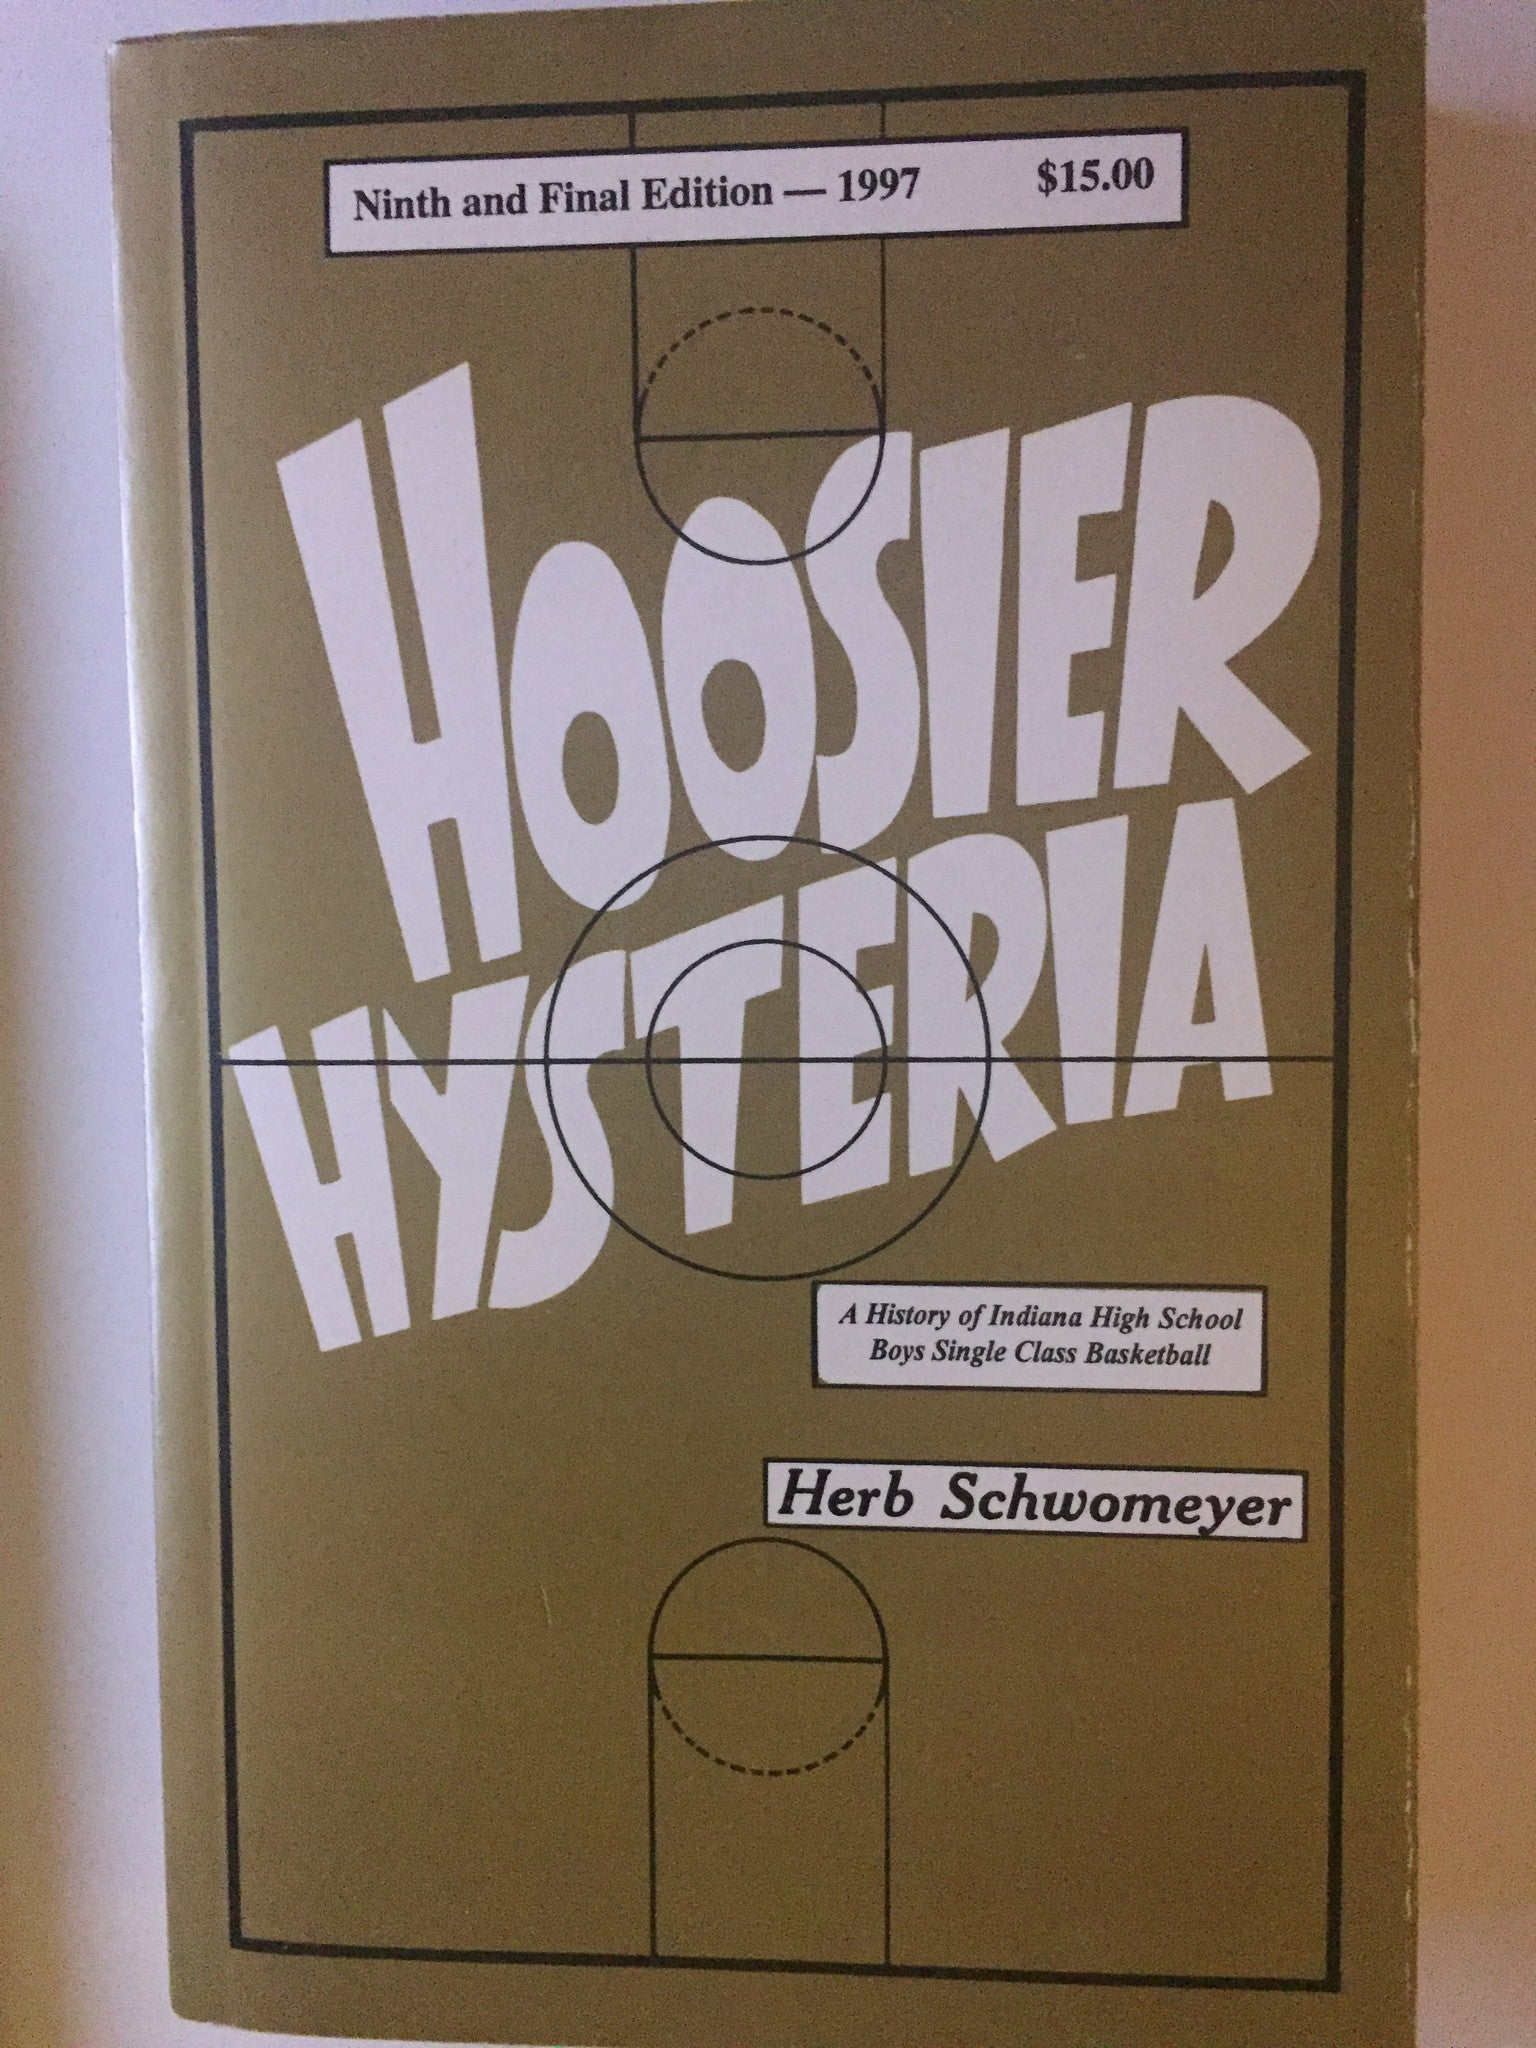 1997 Hoosier Hysteria Autographed by Herb Schwomeyer - Vintage Indy Sports